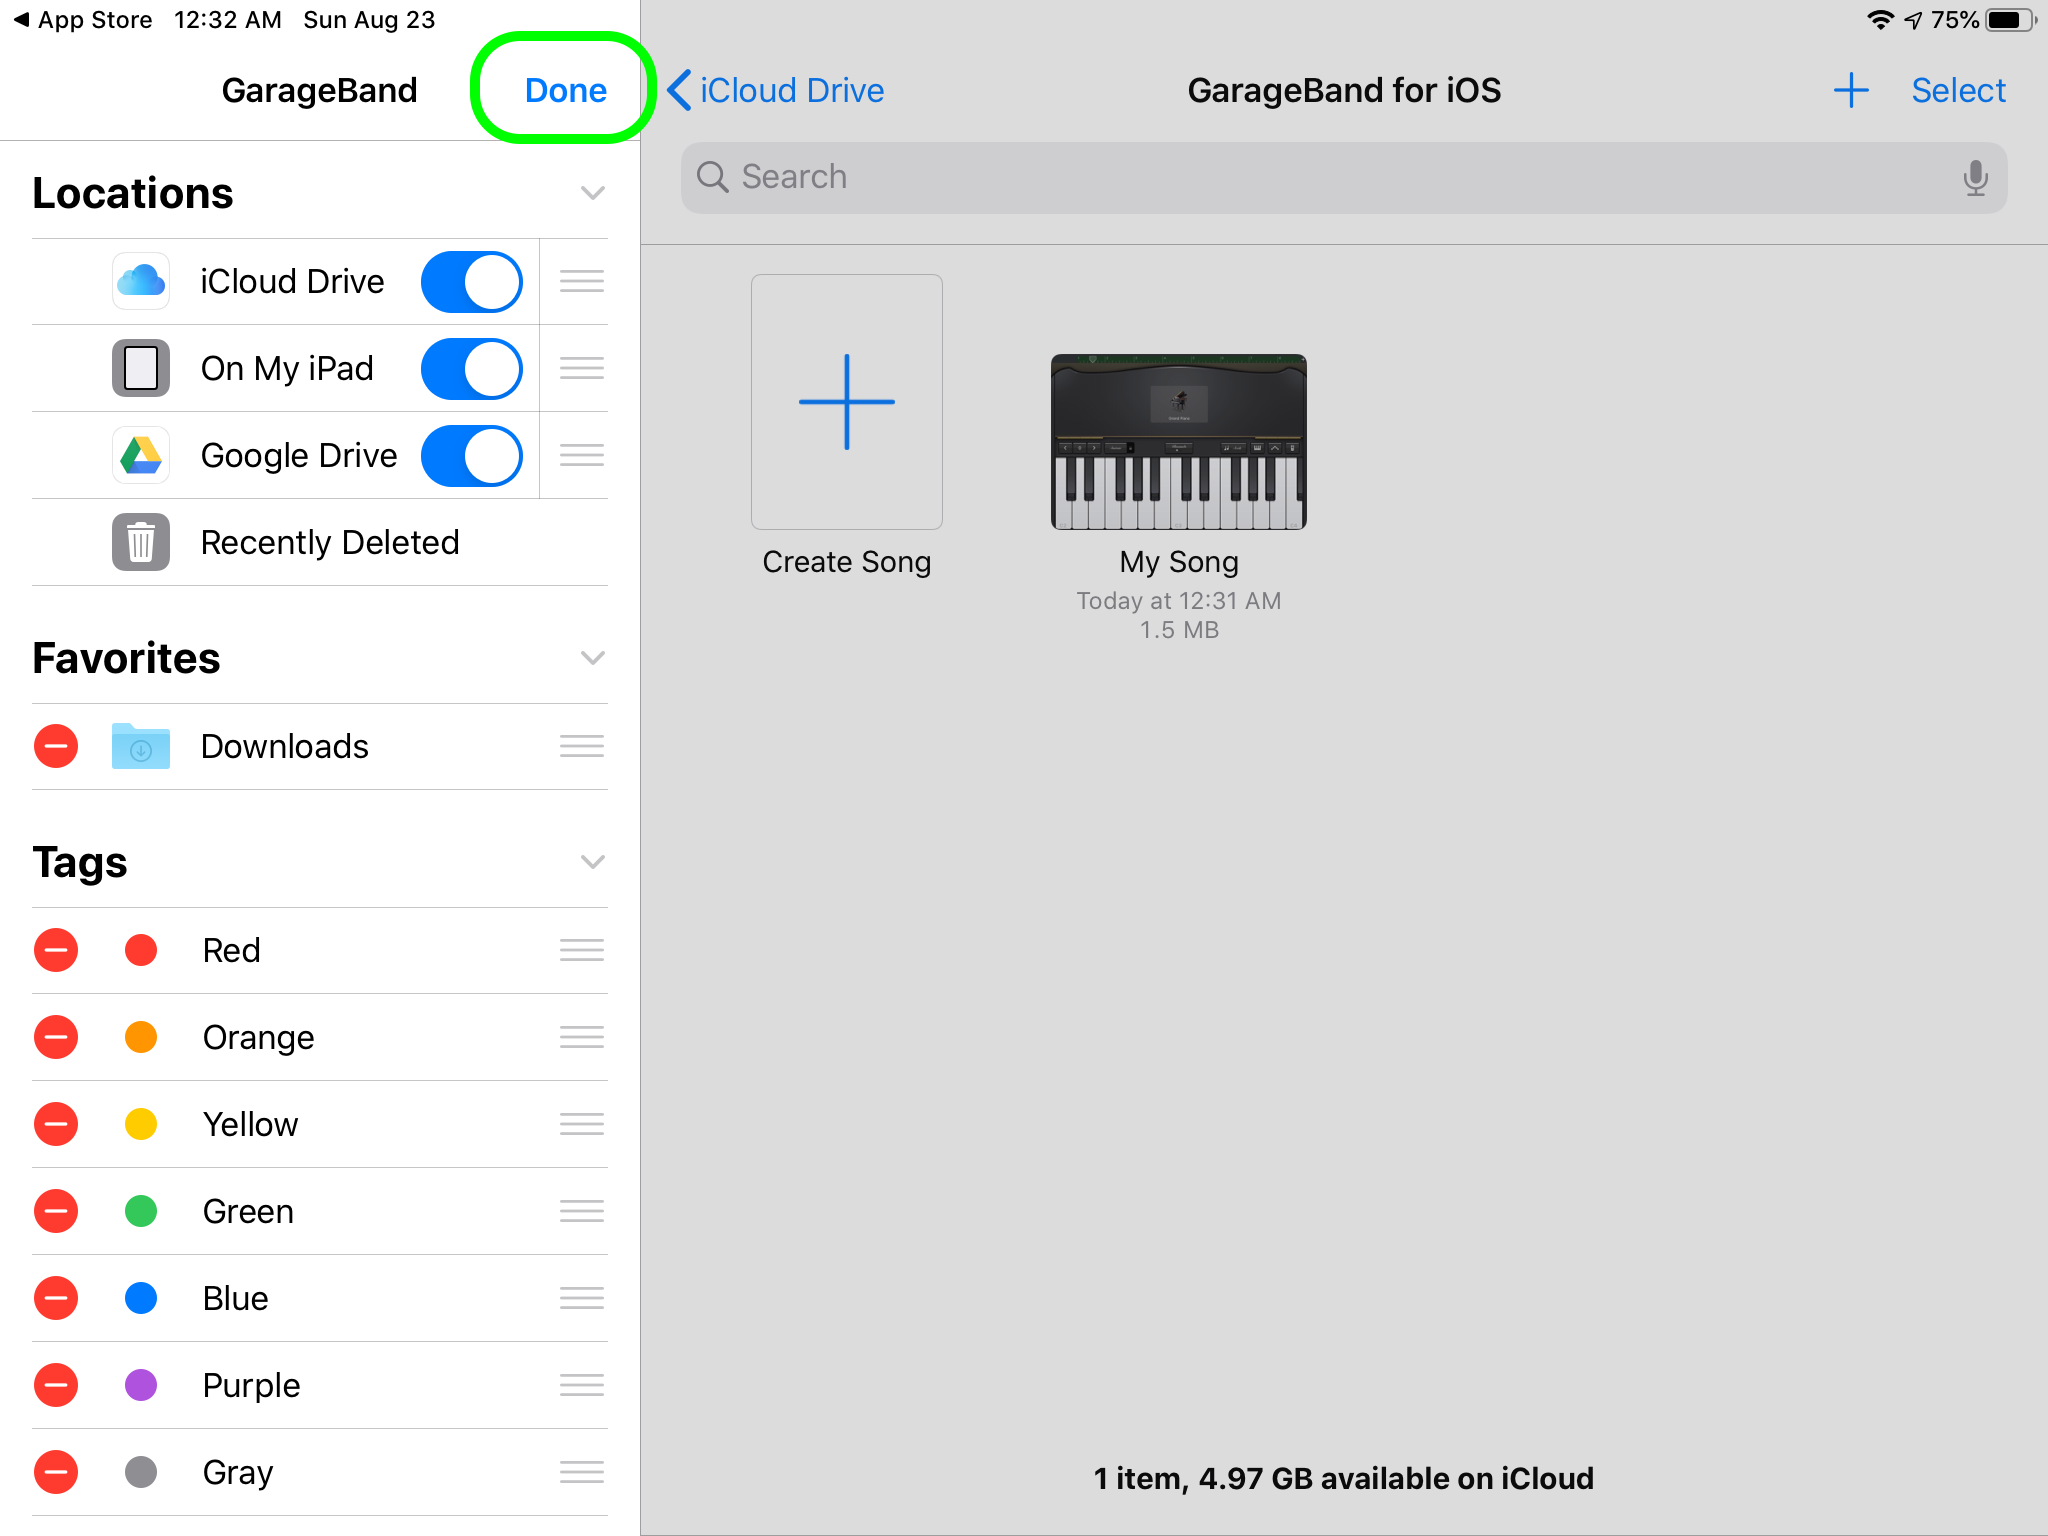 aGarageBand Share to Drive 3